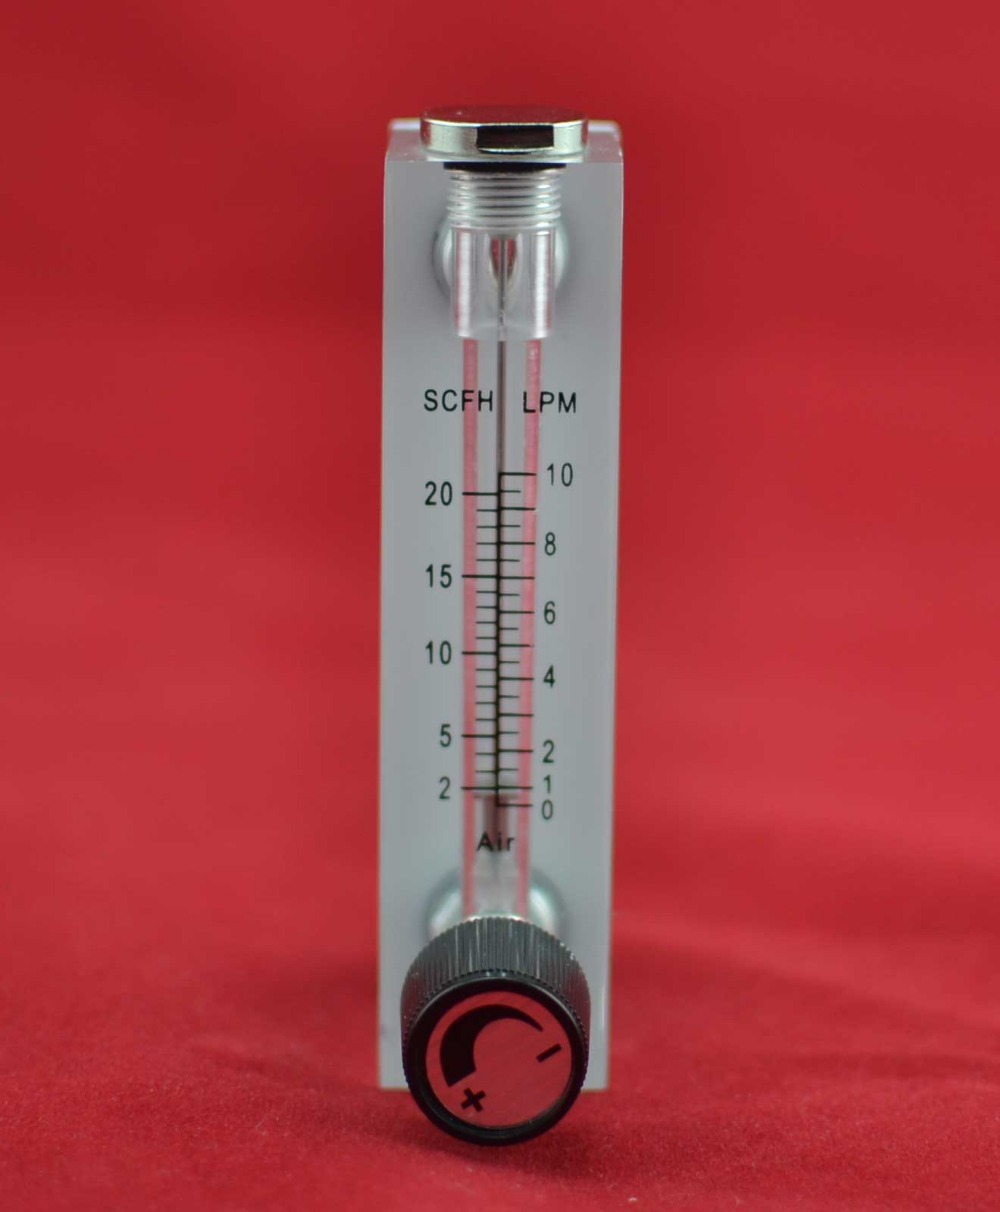 LZM-6T 1-10LPM/2-20SCFH panel type acrylic flowmeter(flow meter) with adjust valve bass fitting Female G1/4